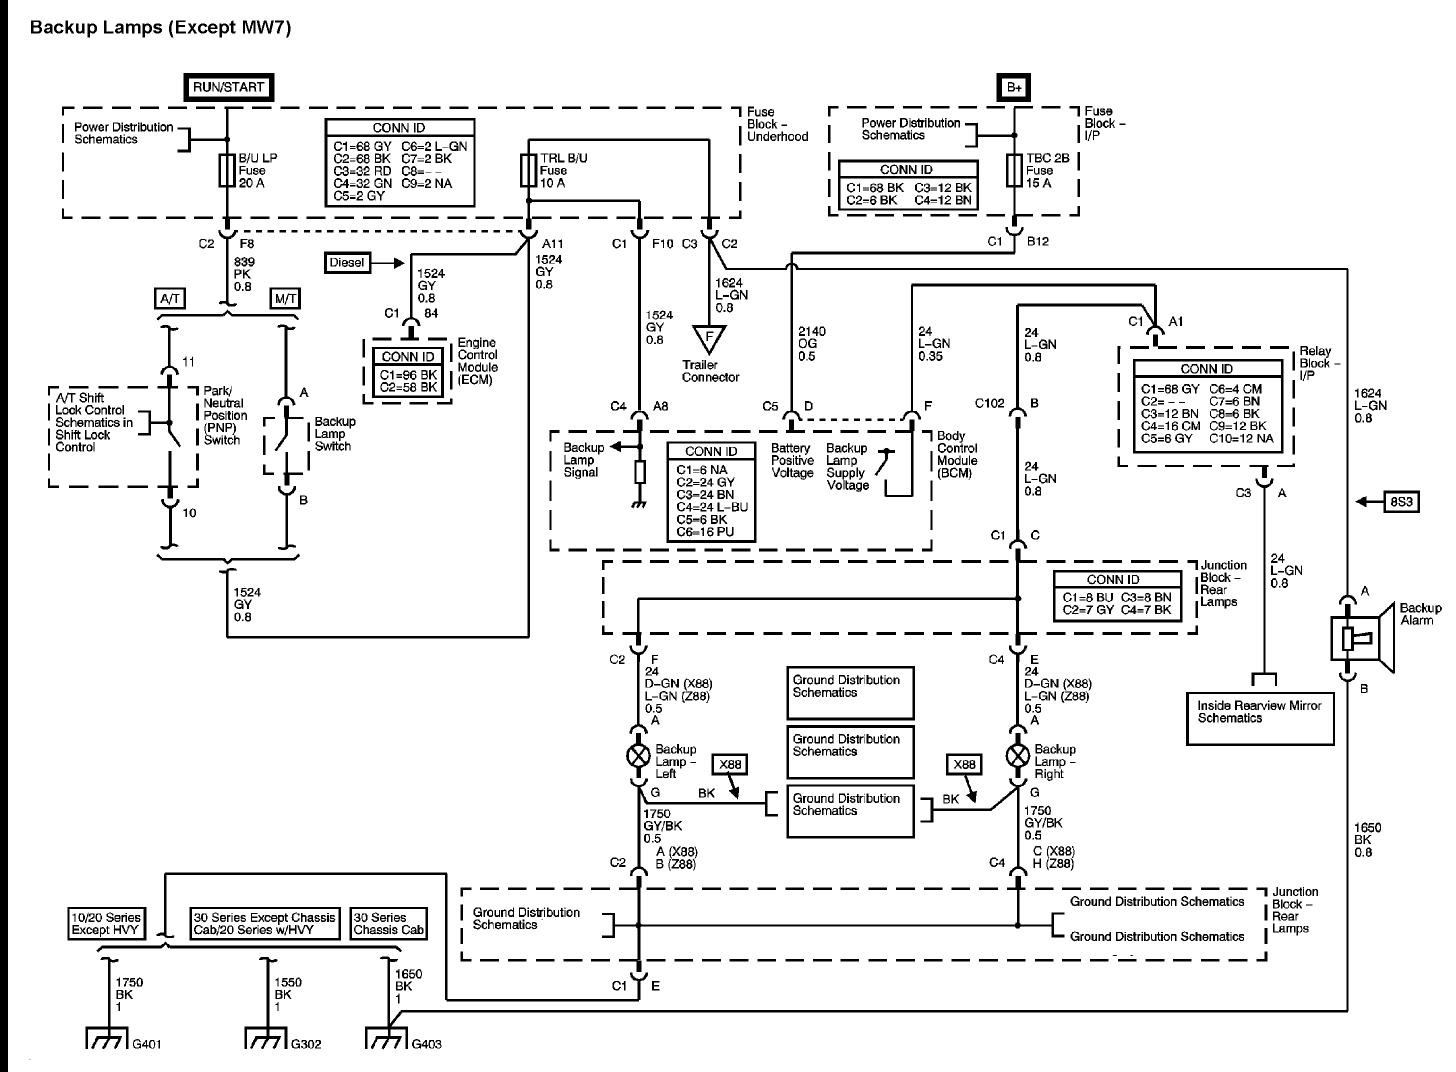 [DIAGRAM] 08 Silverado Wiring Diagram FULL Version HD